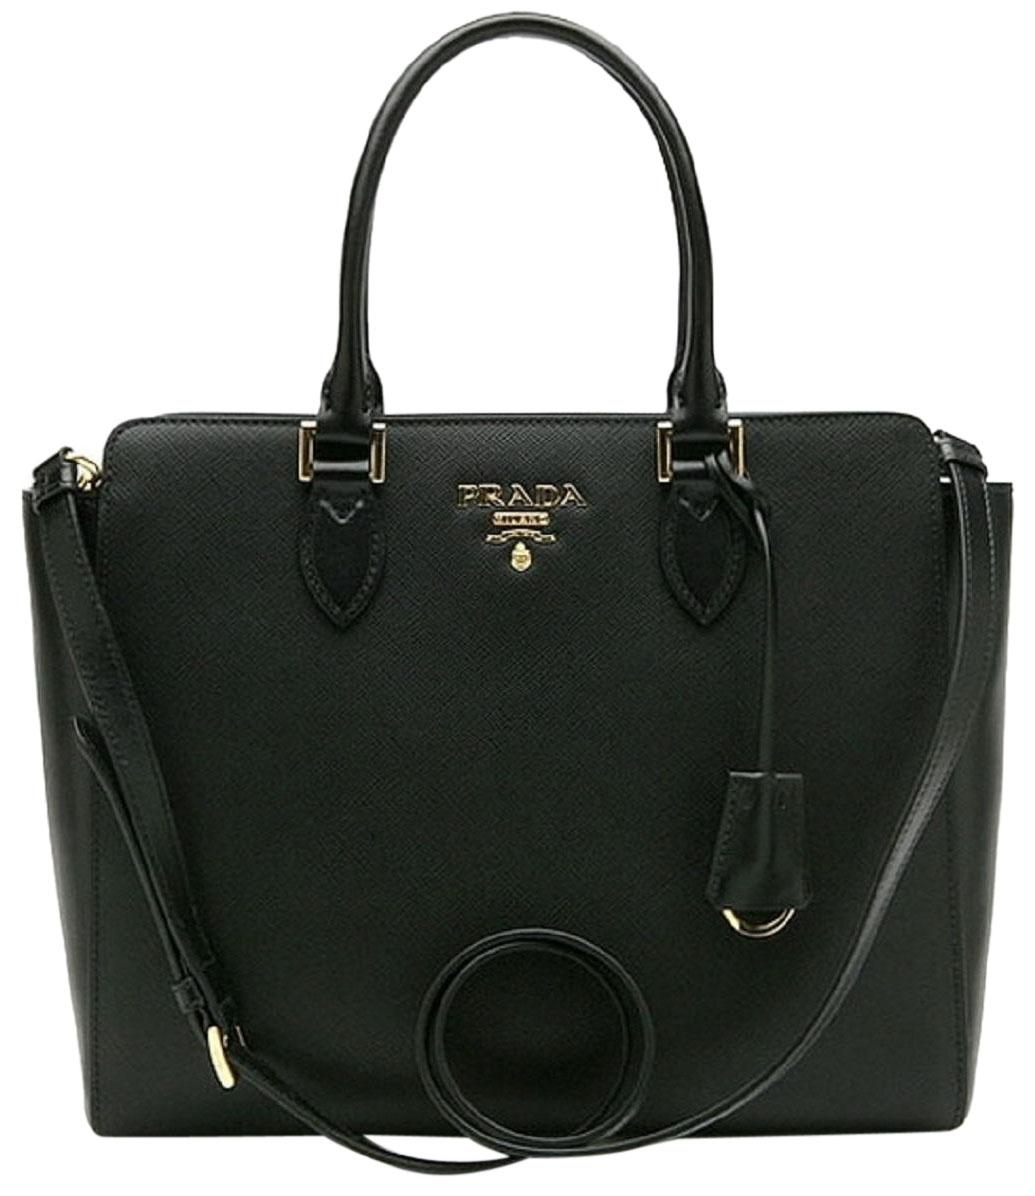 1108a8371ee9 buy prada handbags handbags saffiano lux satchel in black bc4f7 a12b4